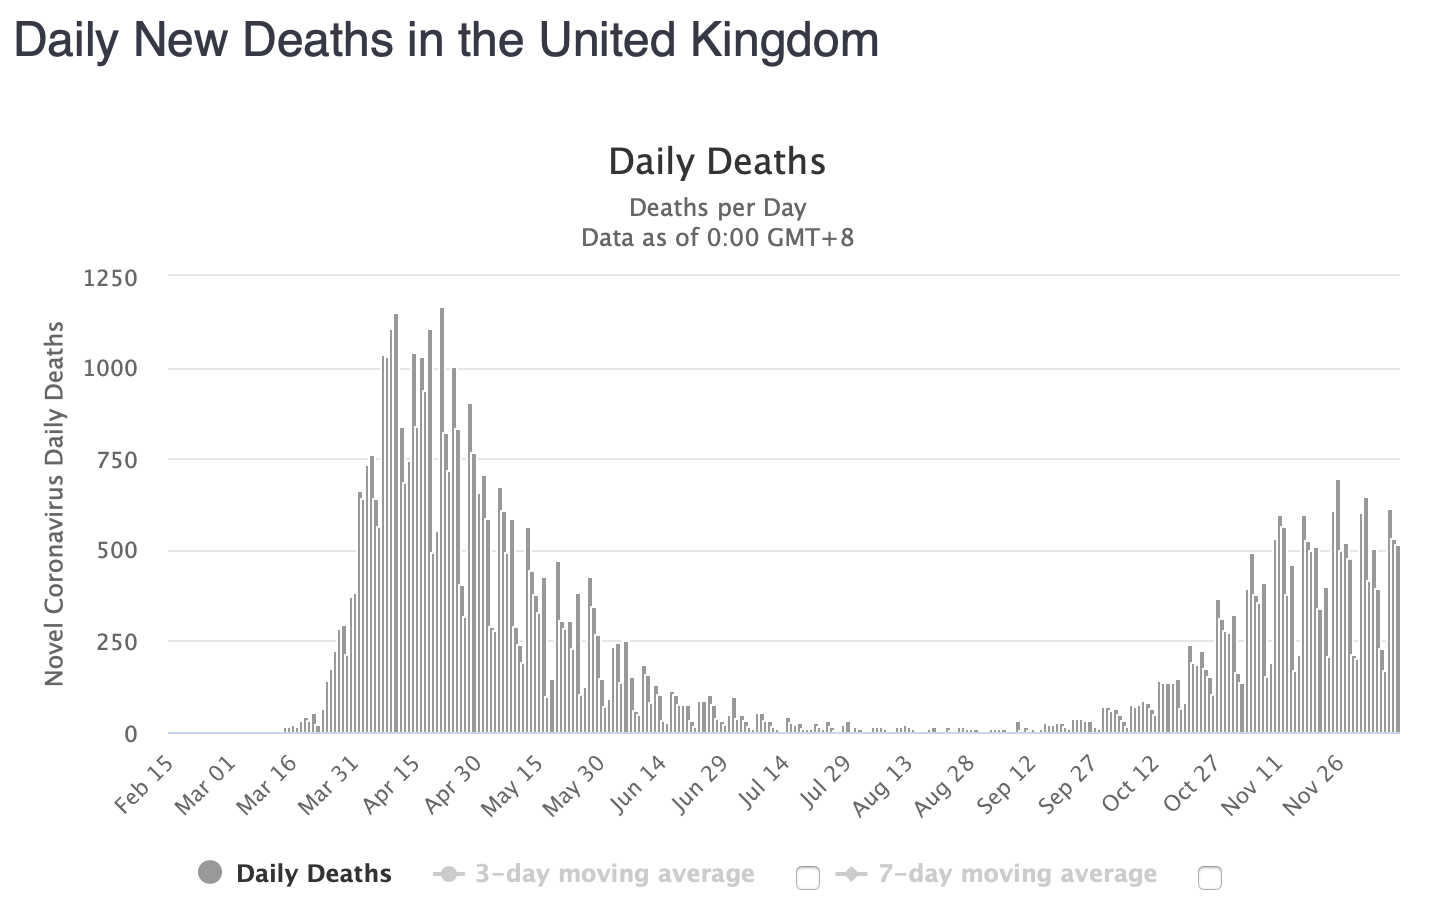 Worldometers Daily new deaths in the UK up to December 11th